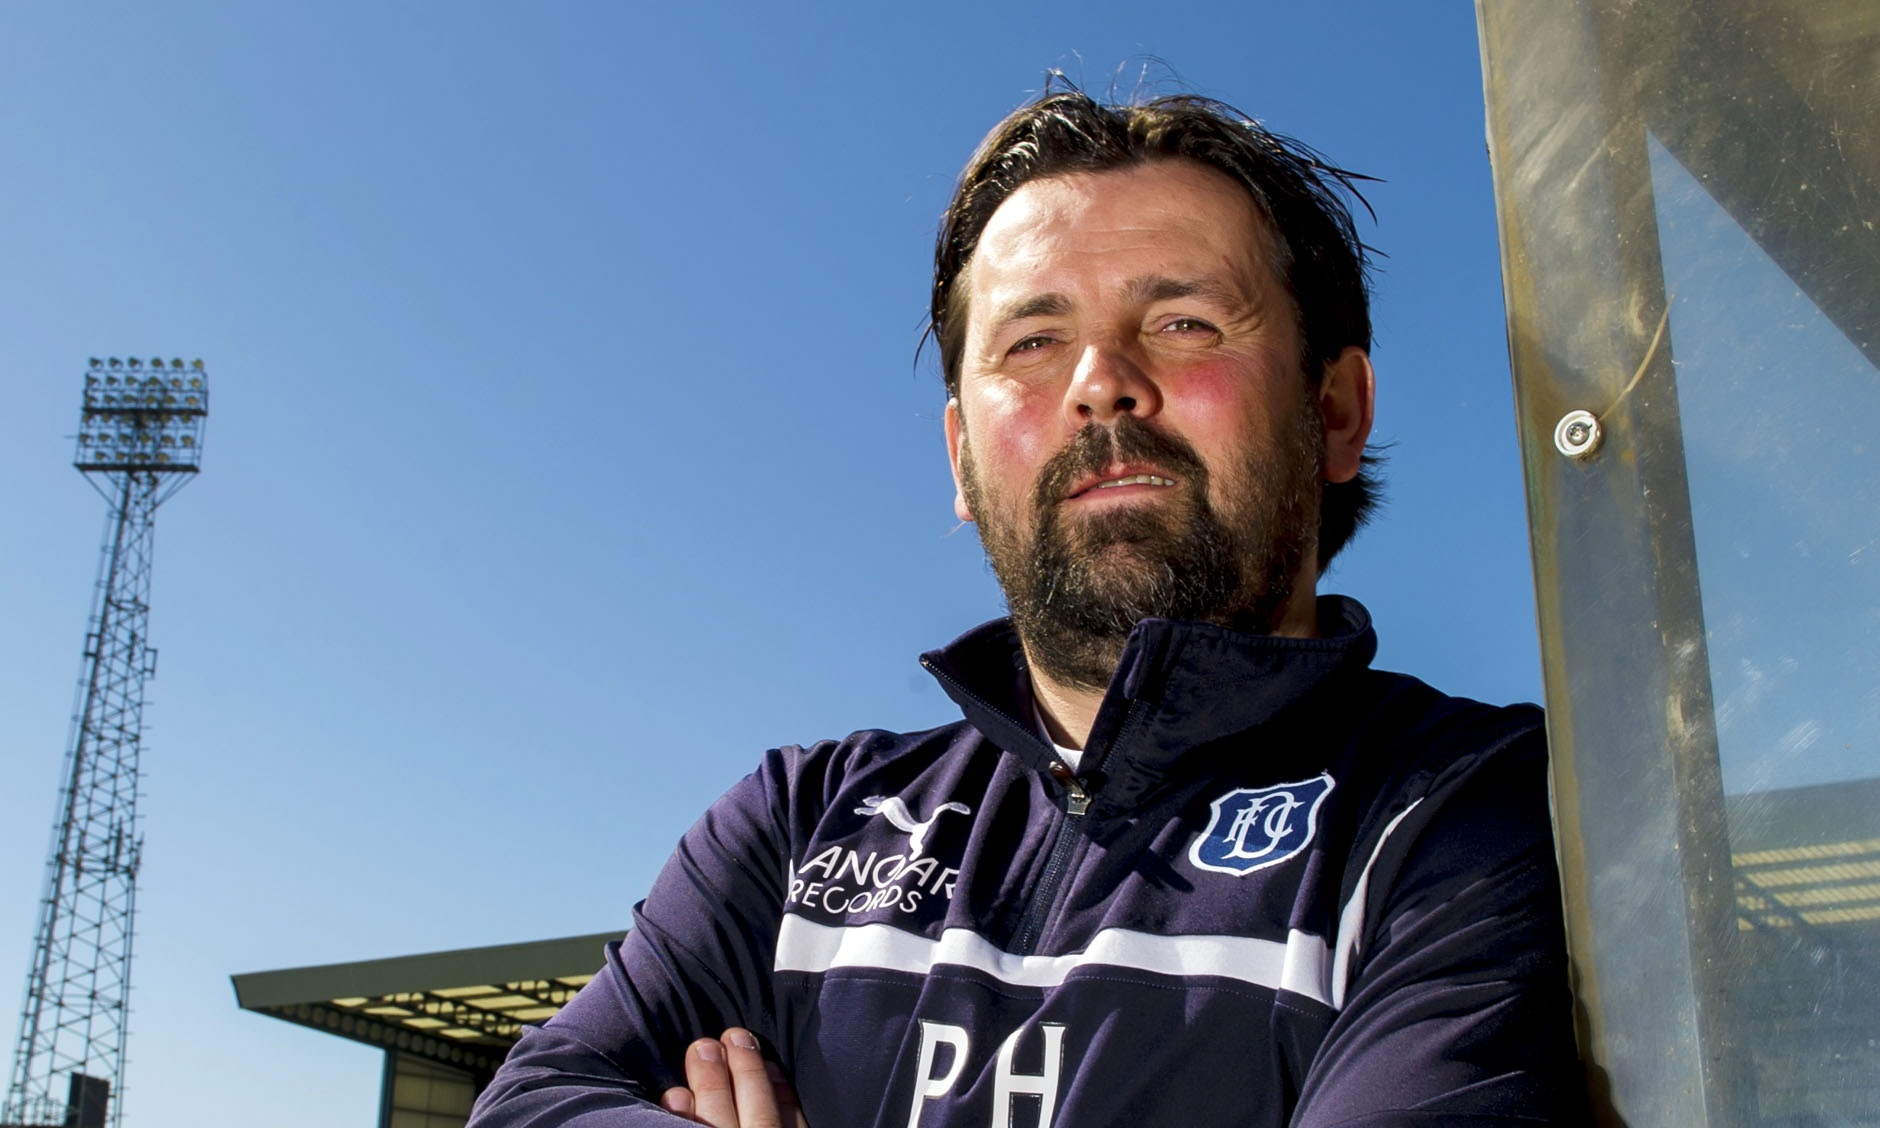 Dundee gaffer Paul Hartley